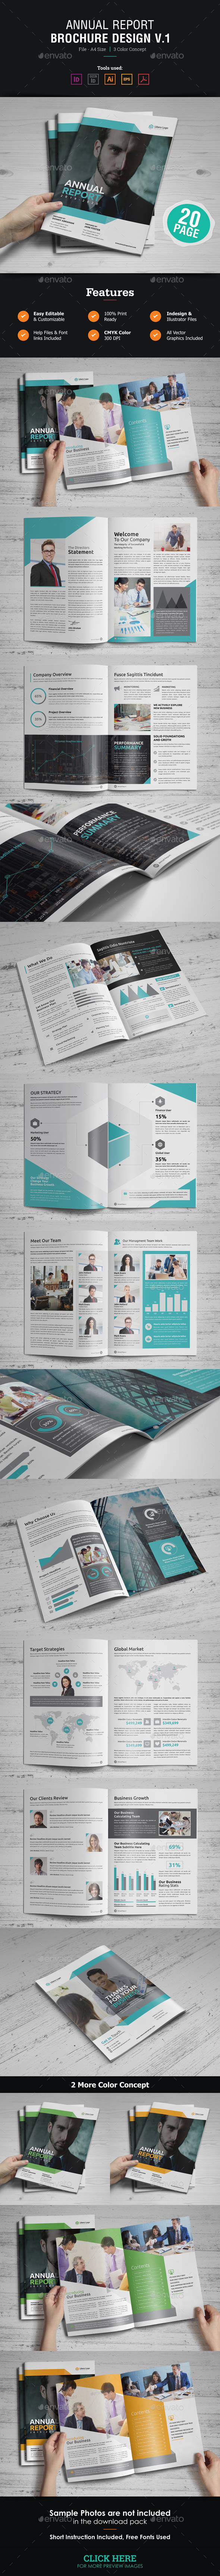 GraphicRiver Annual Report Design 21130786